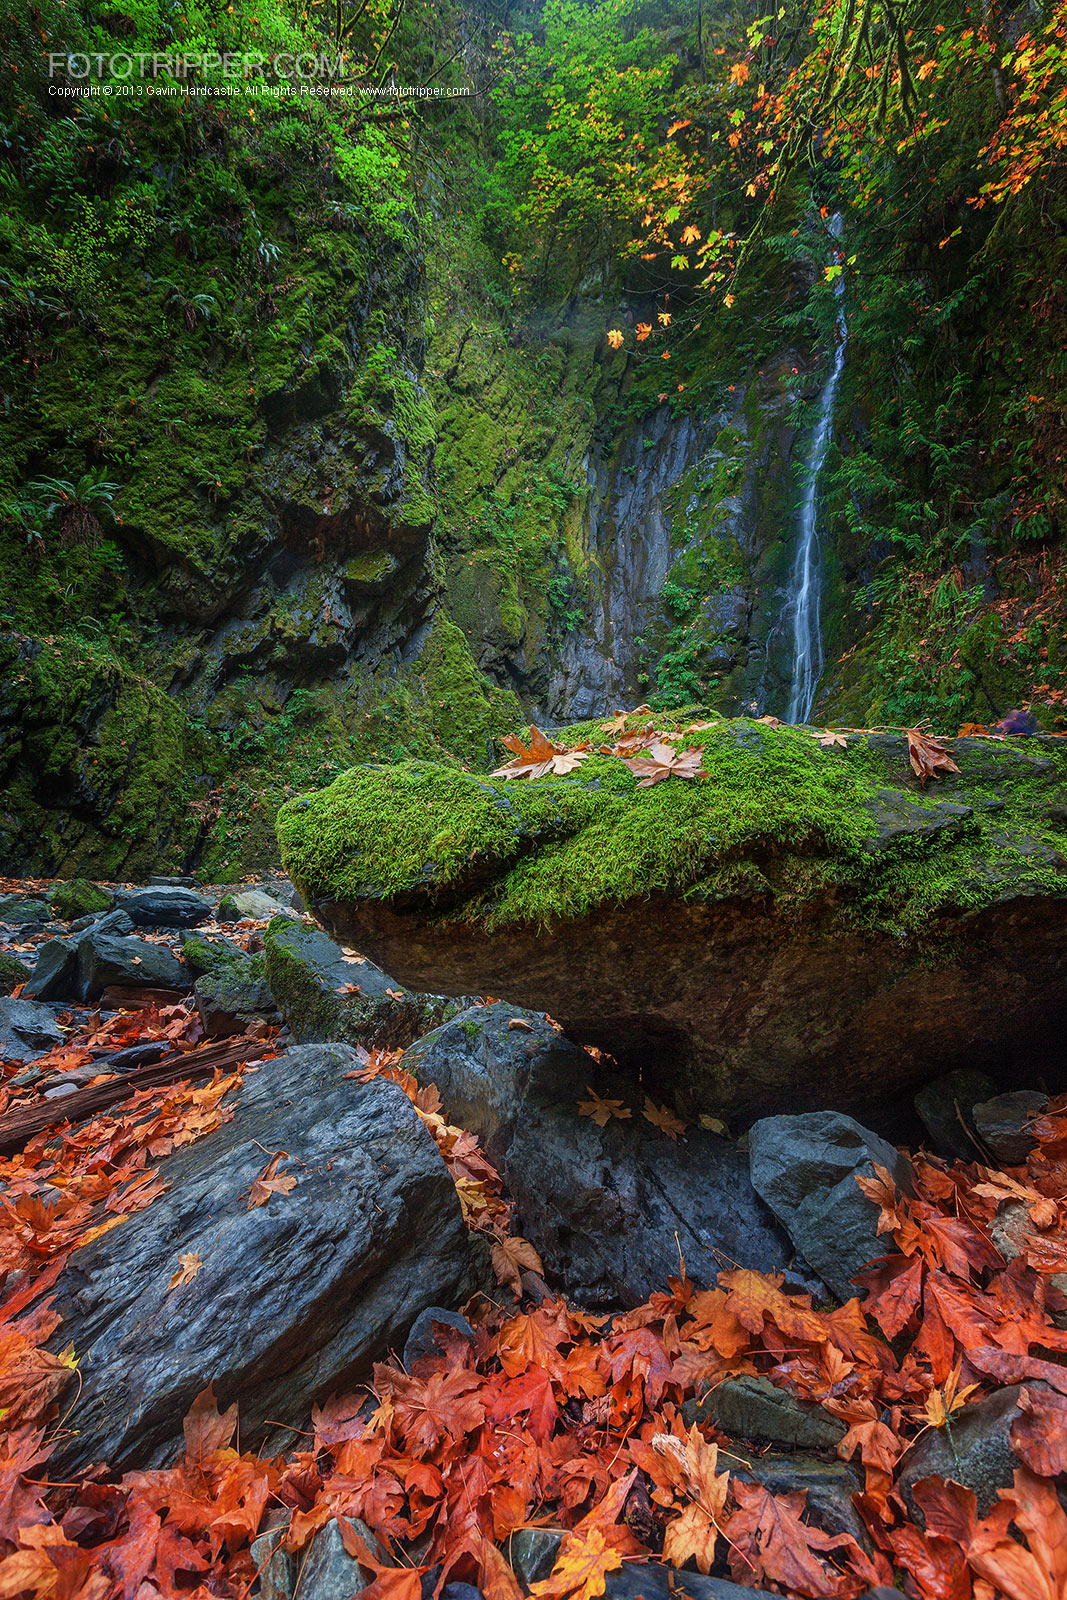 Fall Photo Tips- How to Photograph Autumn Scenes